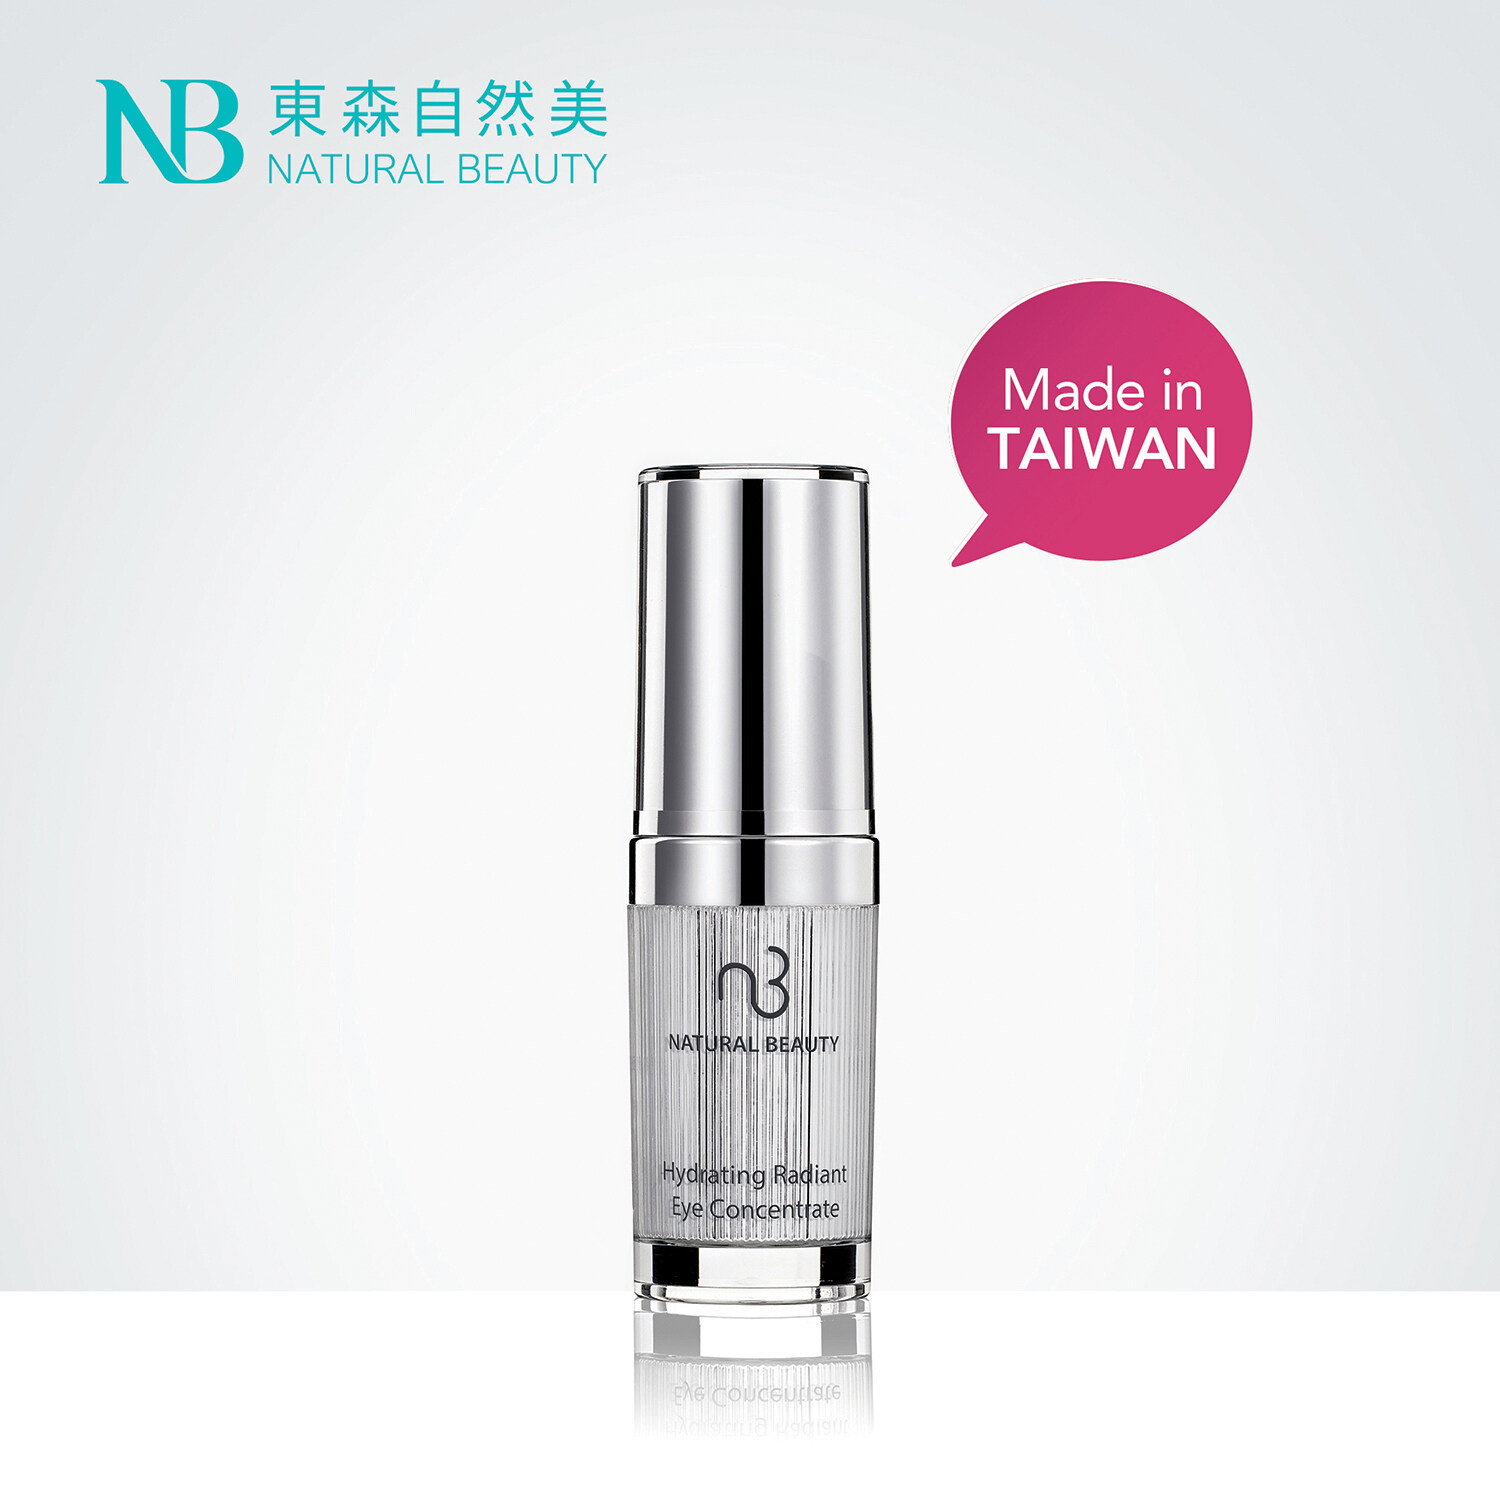 HYDRATING Radiant Eye Concentrate 15ml *Exp 06/2022* (Eye Care / Serum / Essence) - NATURAL BEAUTY 东森自然美